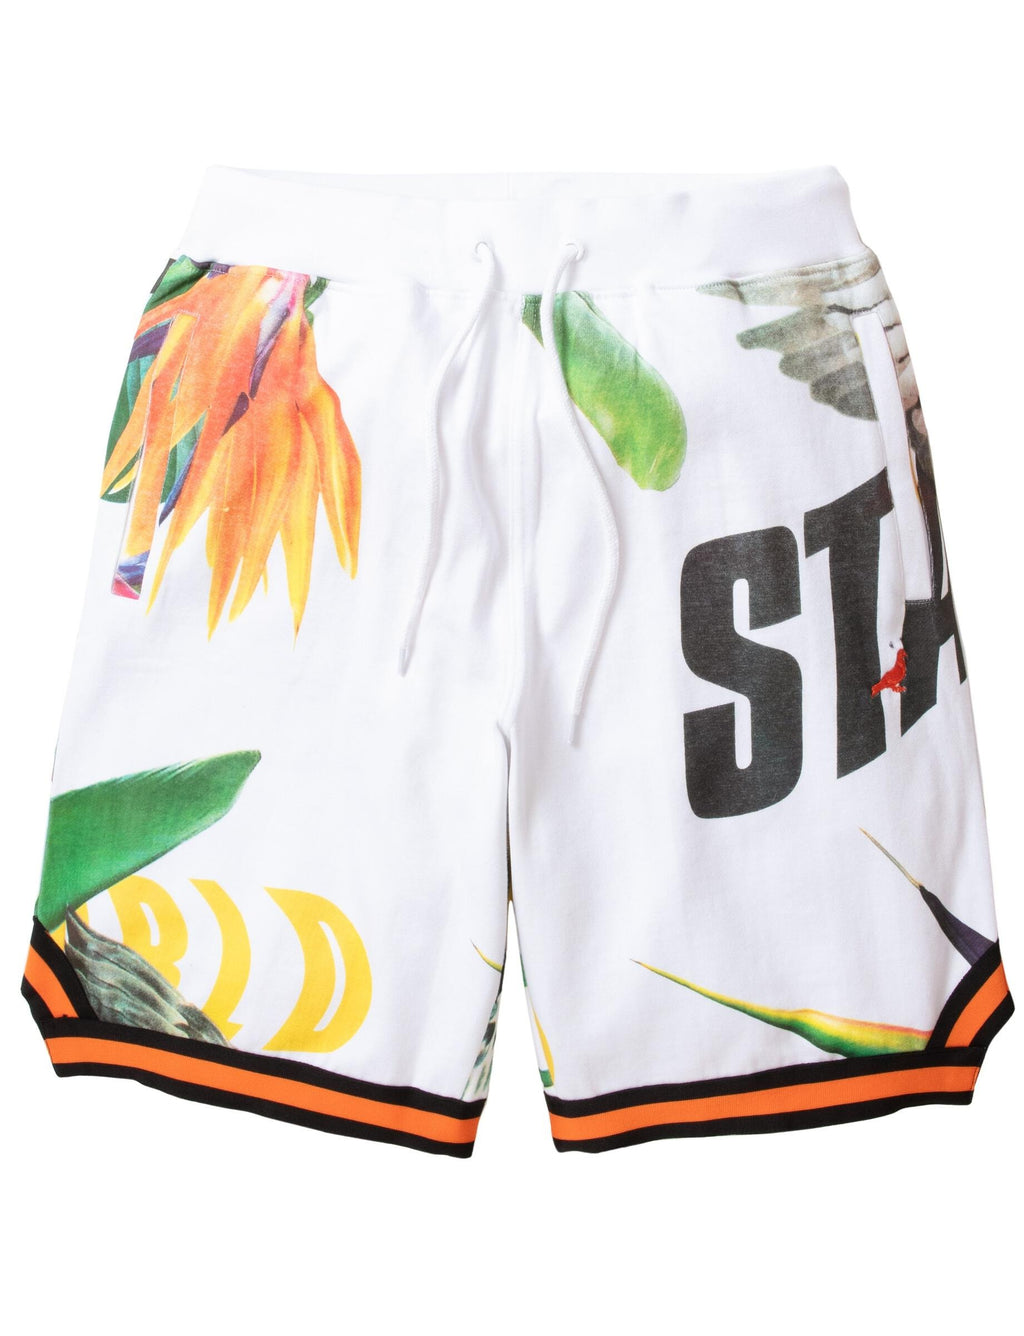 Paradise Print Sweatshort - Shorts | Staple Pigeon